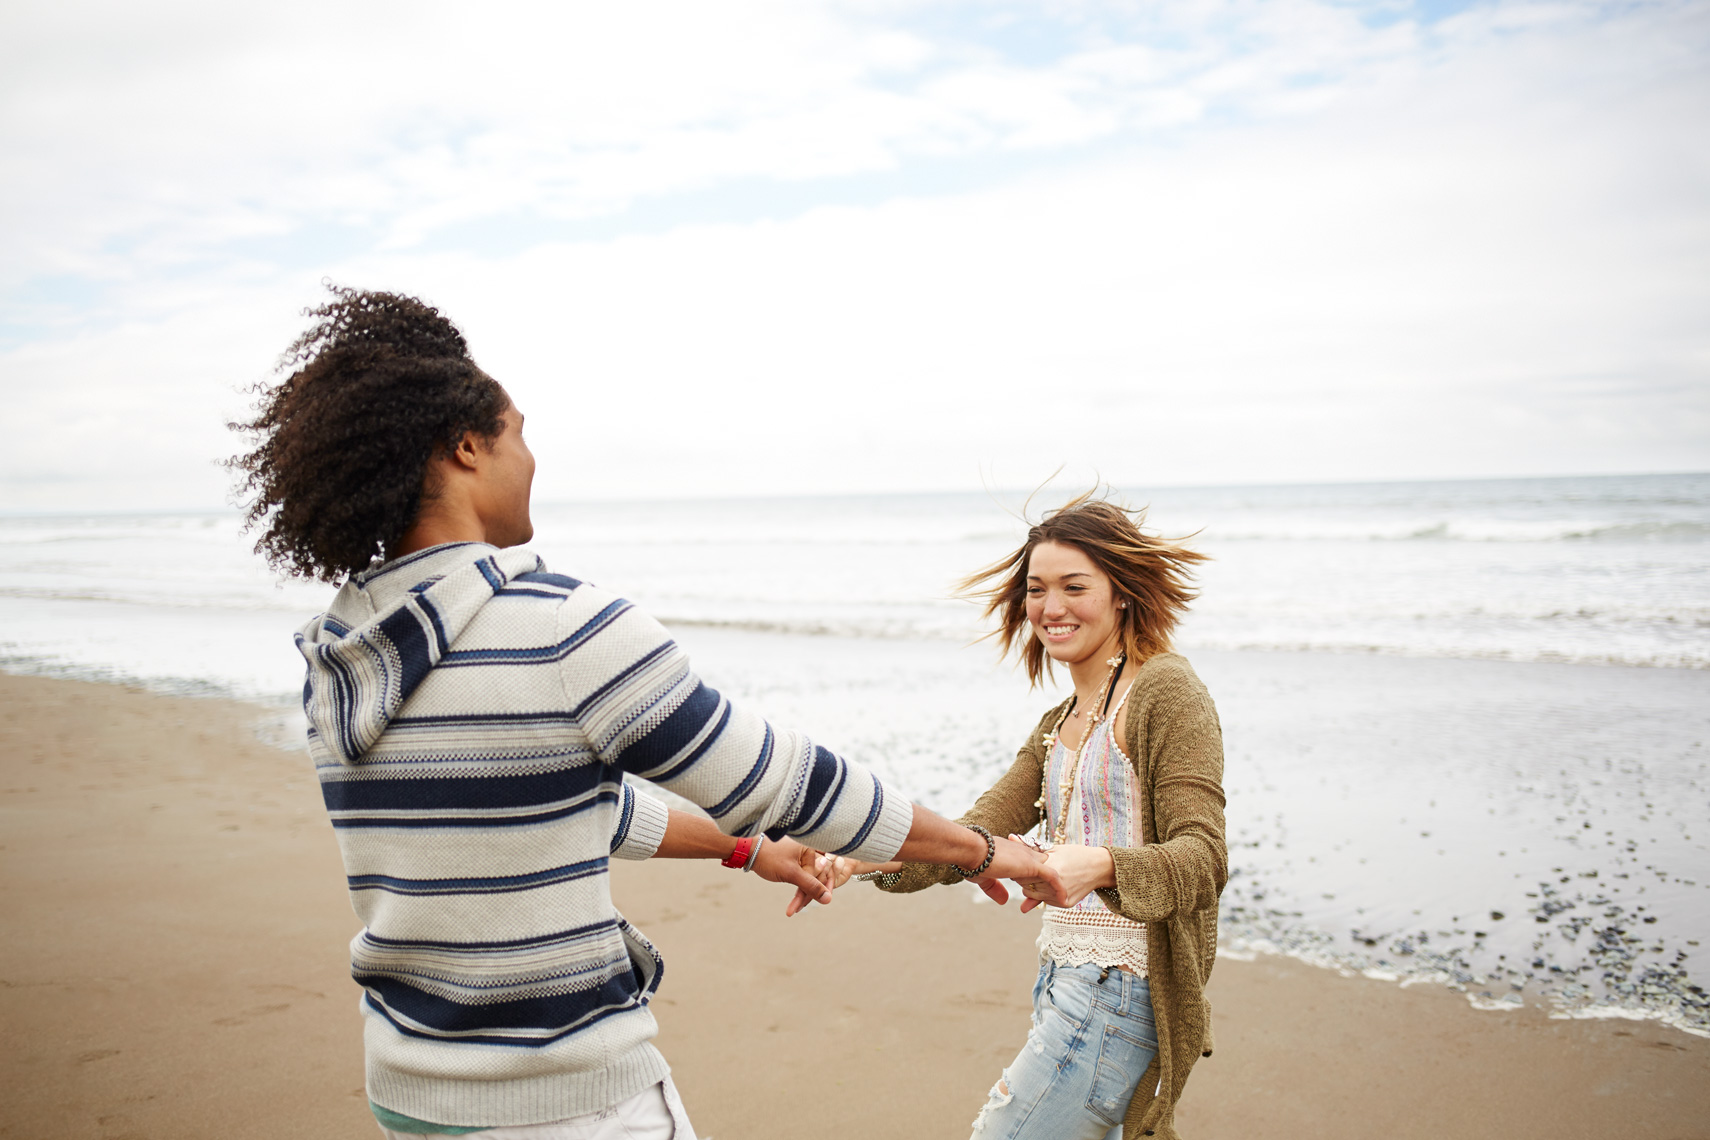 couples on the beach facing the ocean hugging, african american man, blonde white woman, stinson beach, lifestyle photography, commercial photography, advertising photography, san francisco, holding hands